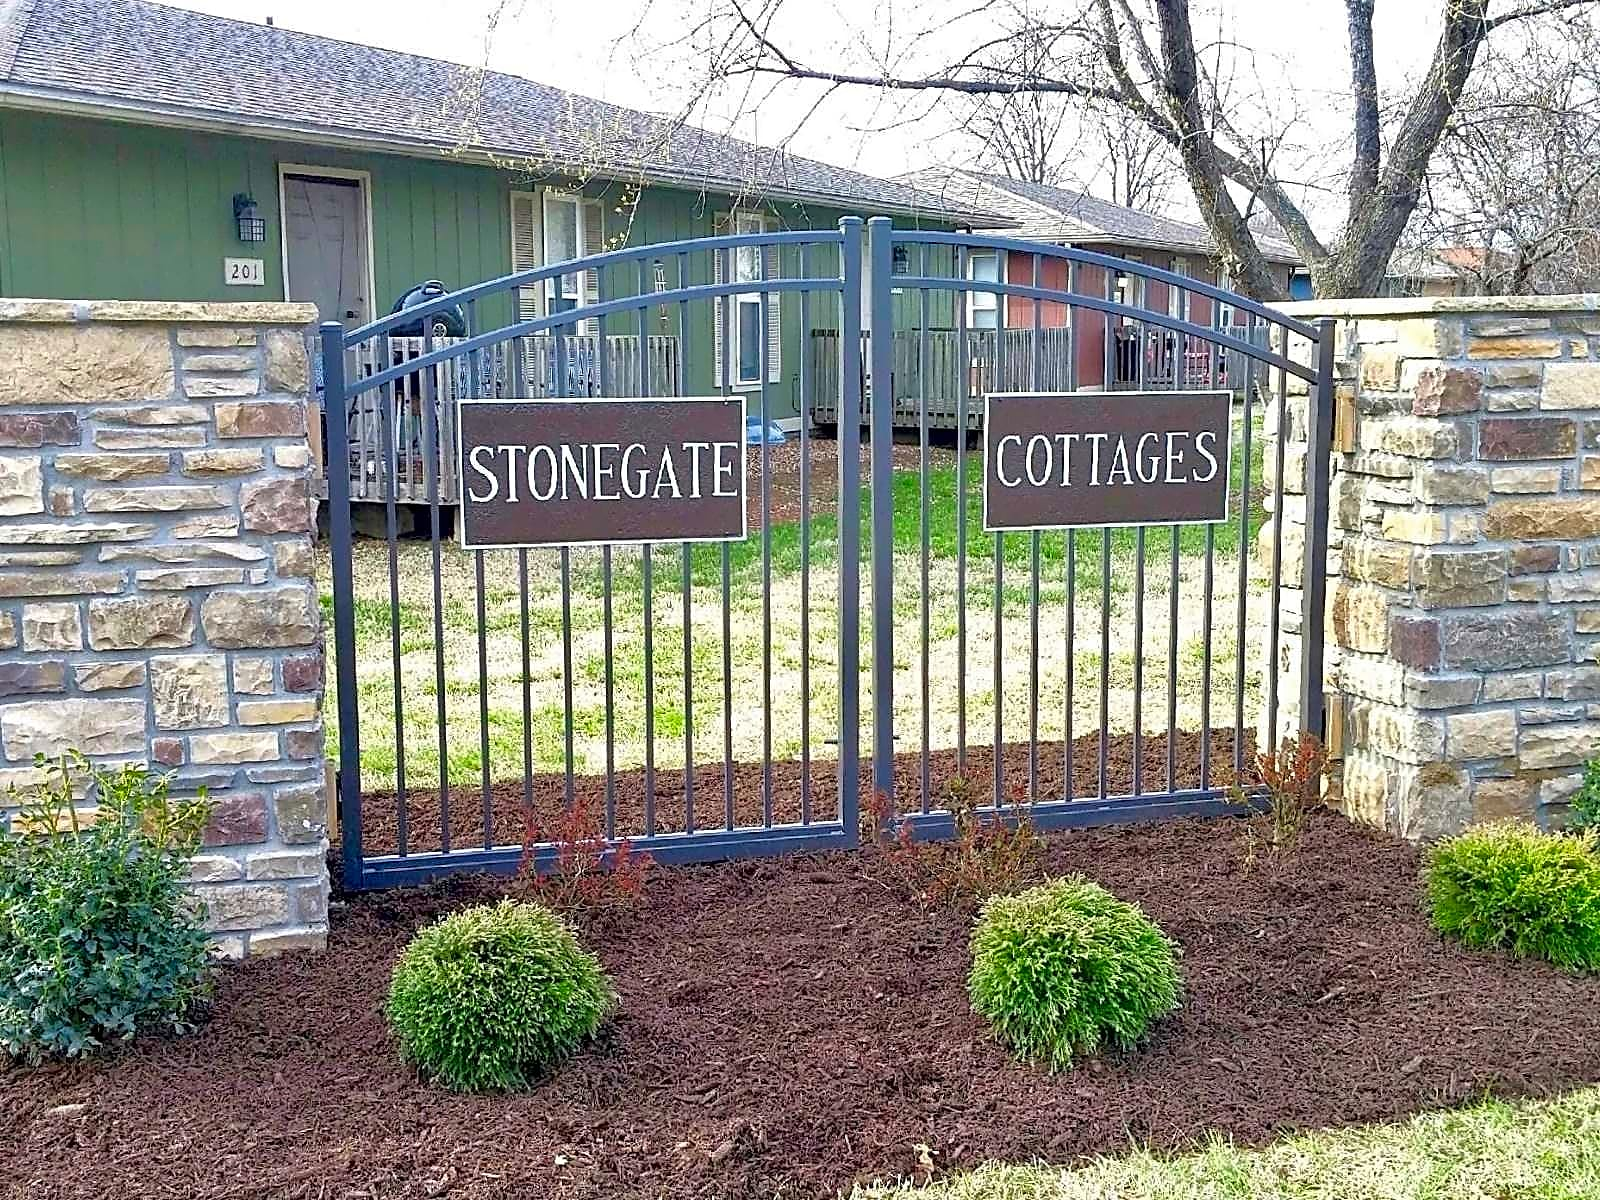 Stonegate Cottages